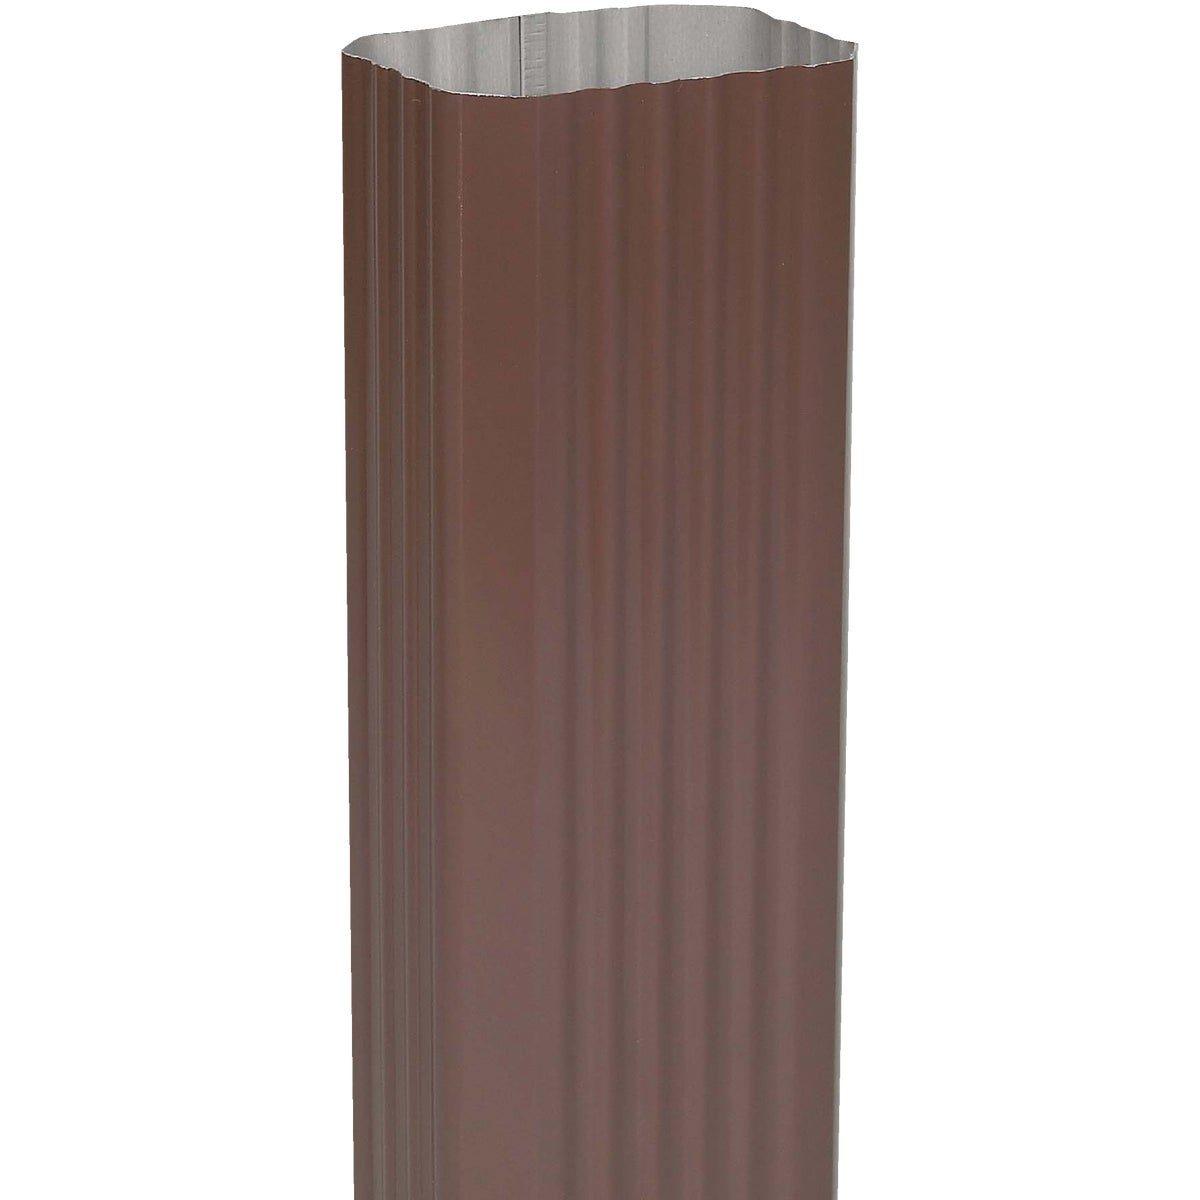 2X3 BROWN ALUM DOWNSPOUT - 2401019120 by Amerimax Home Prod